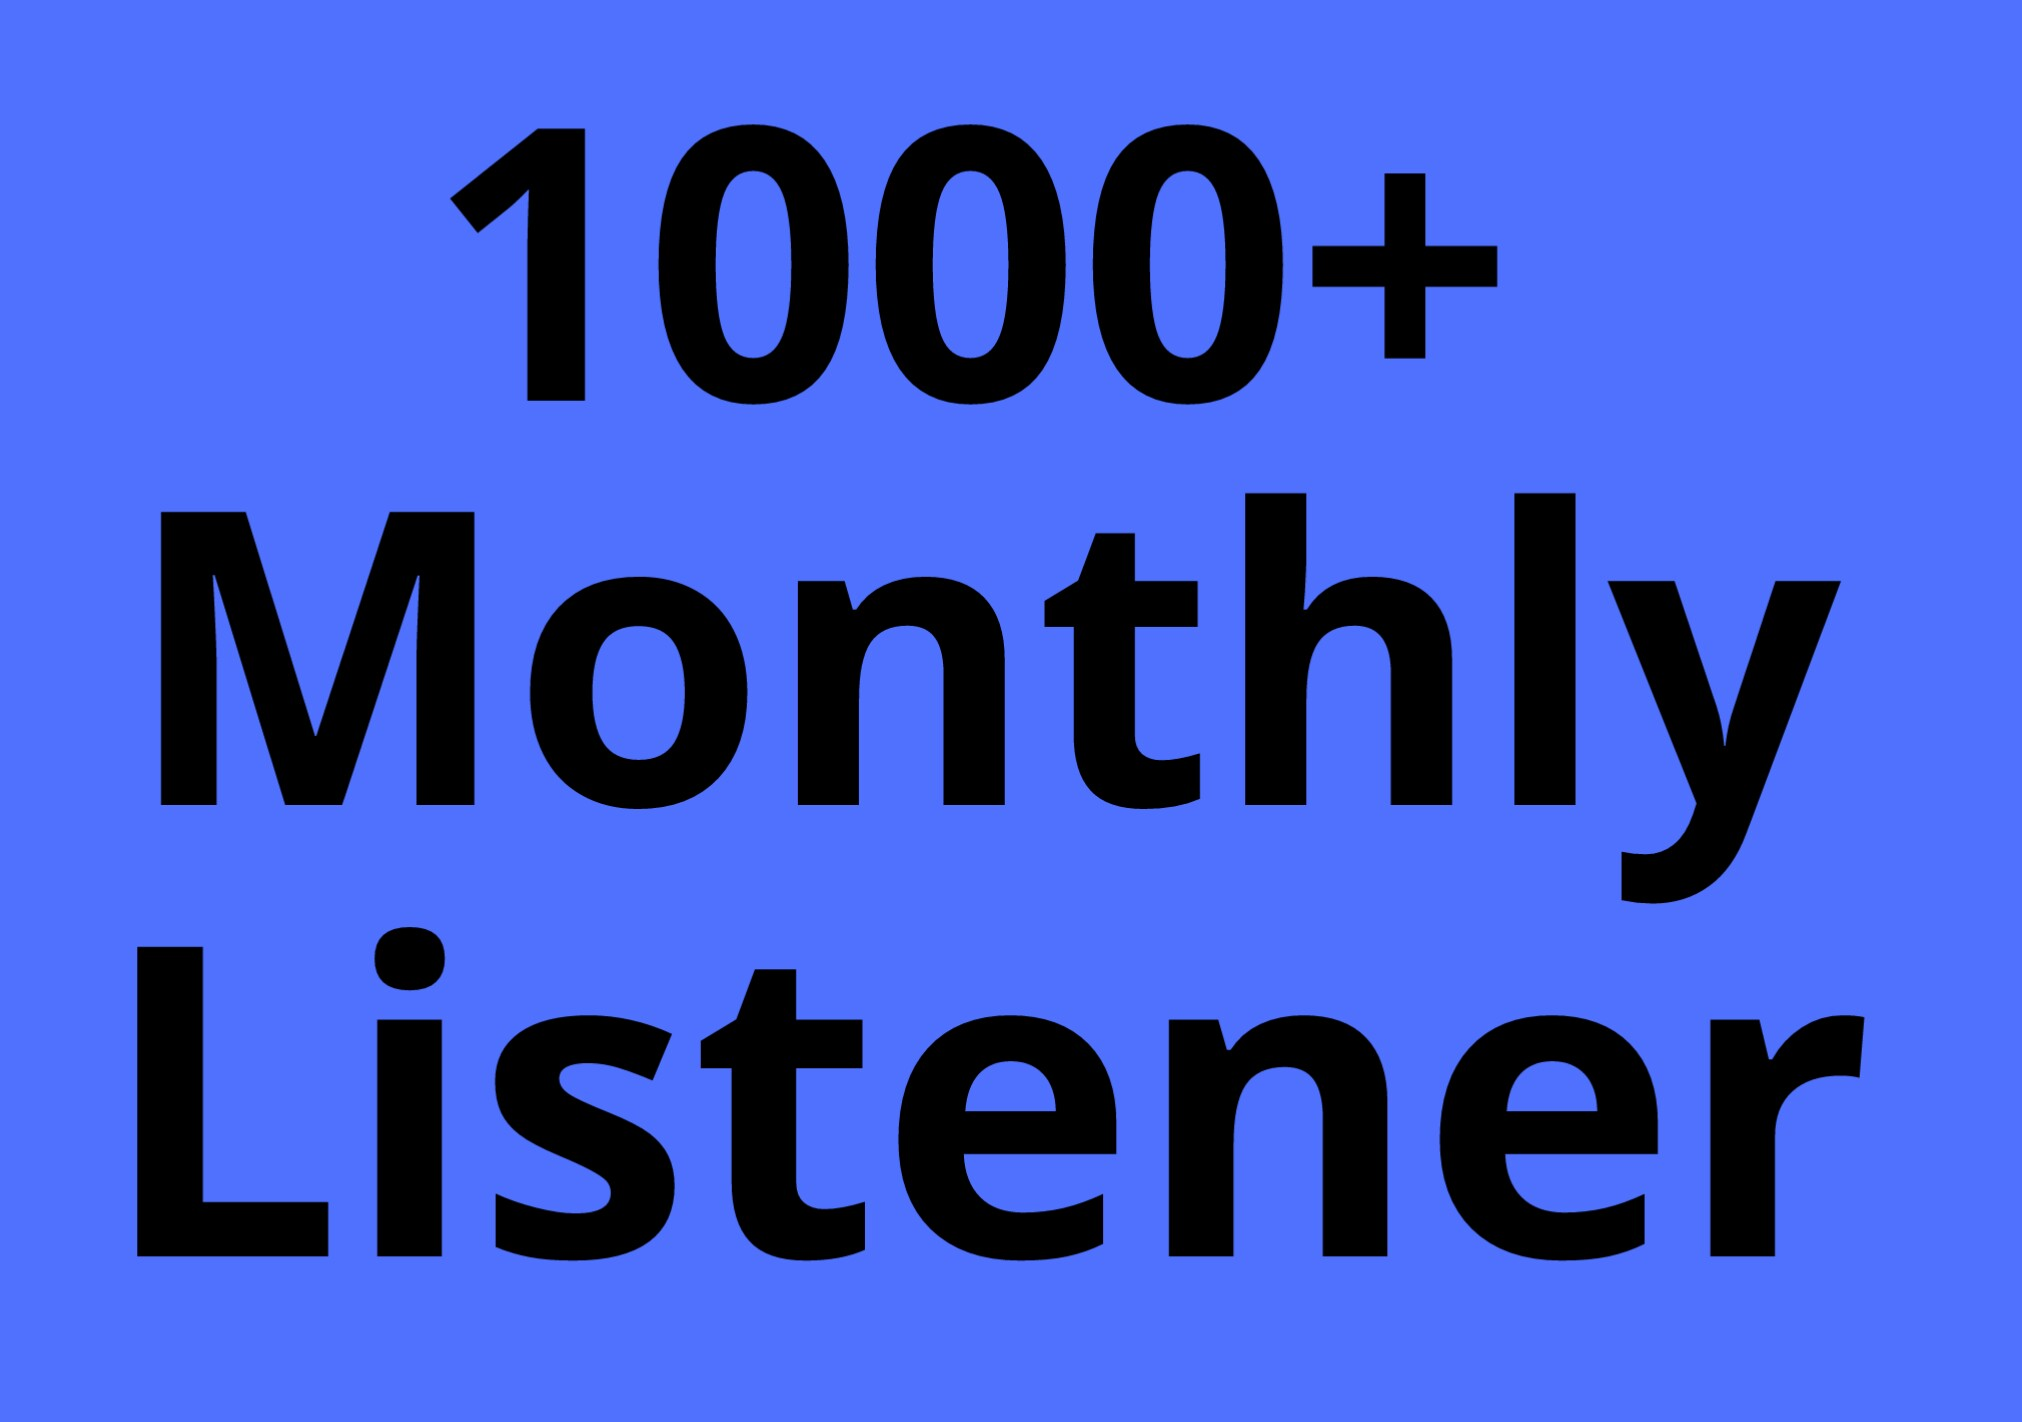 Music Promotion 1000+ Monthly Listener From High Quality Non Drop Lifetime Guaranteed